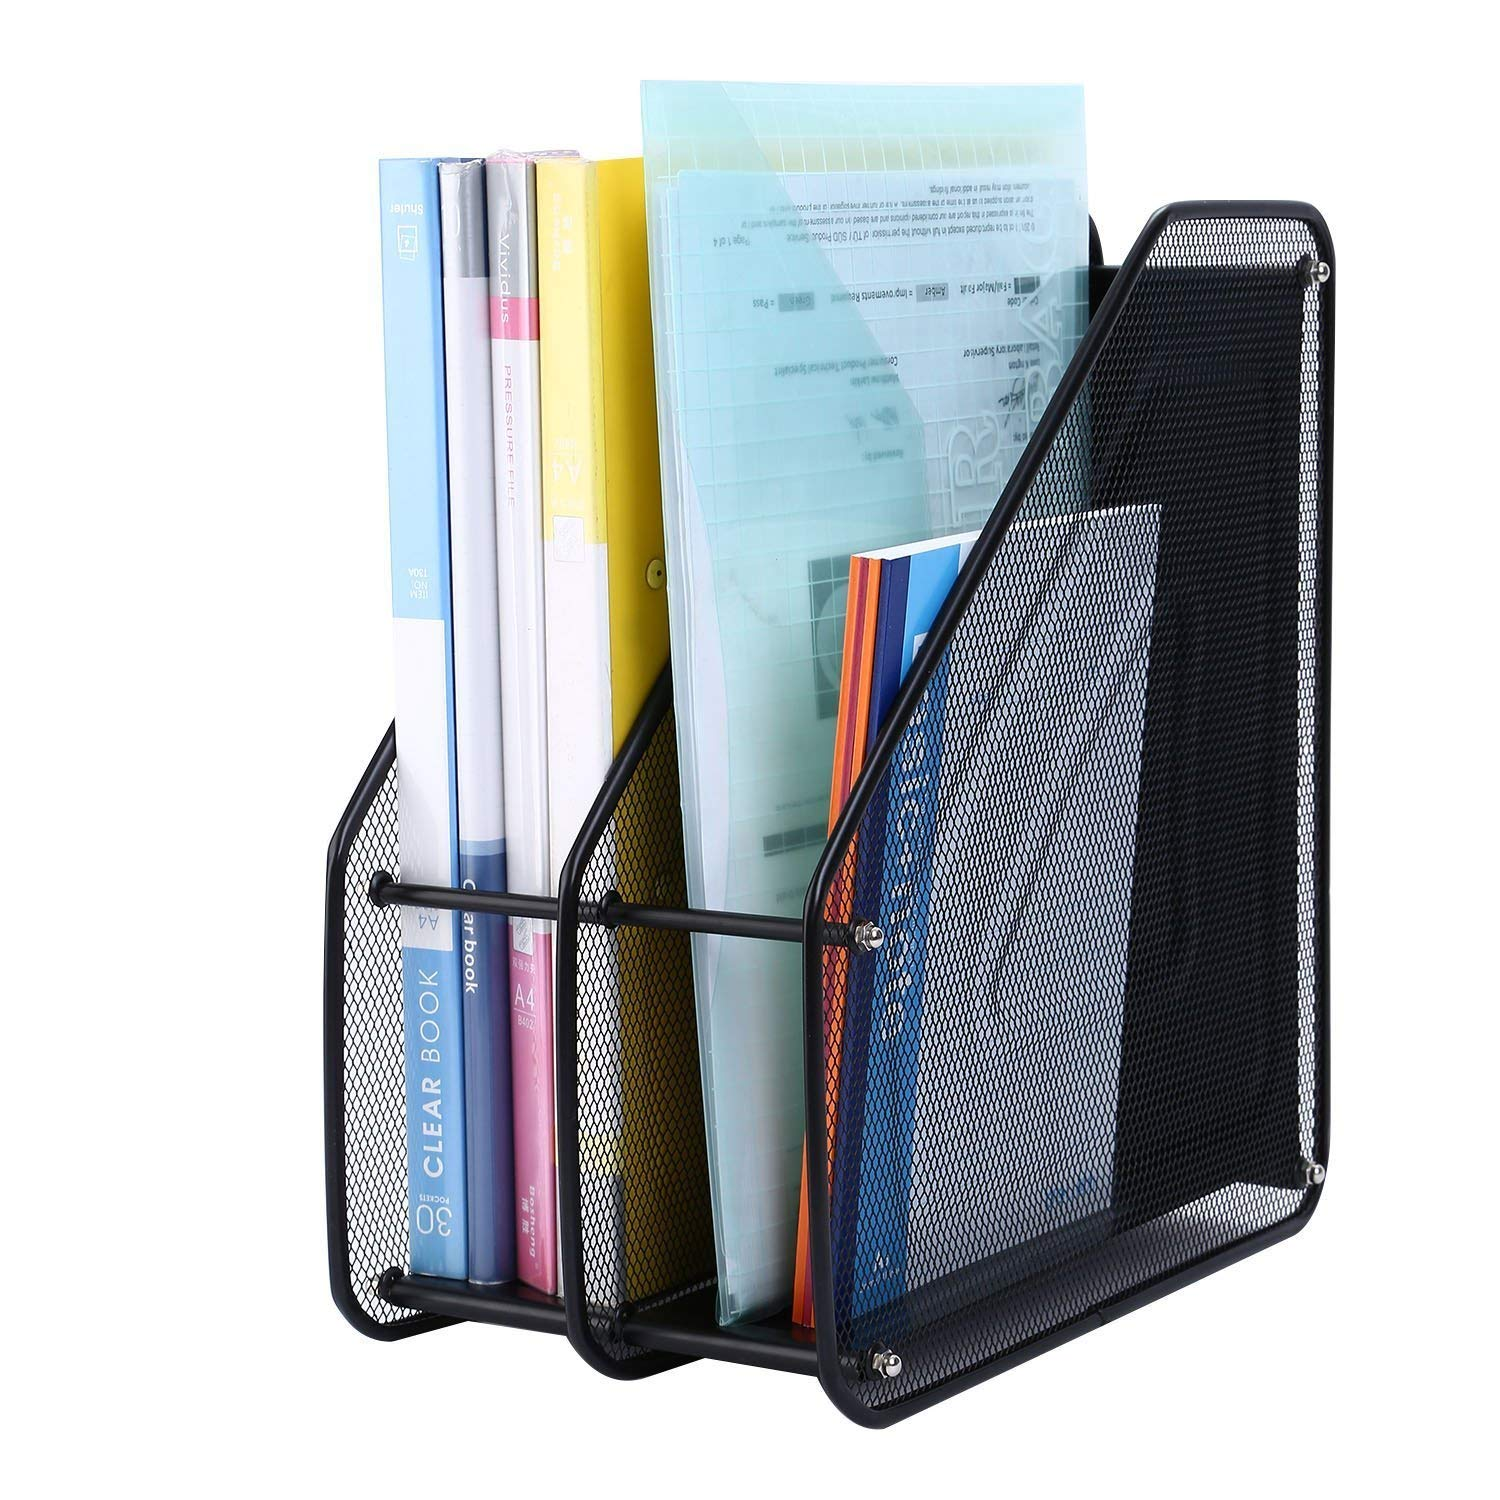 Dayons Desk Organizer Shelves Rack For Magazine Holder File